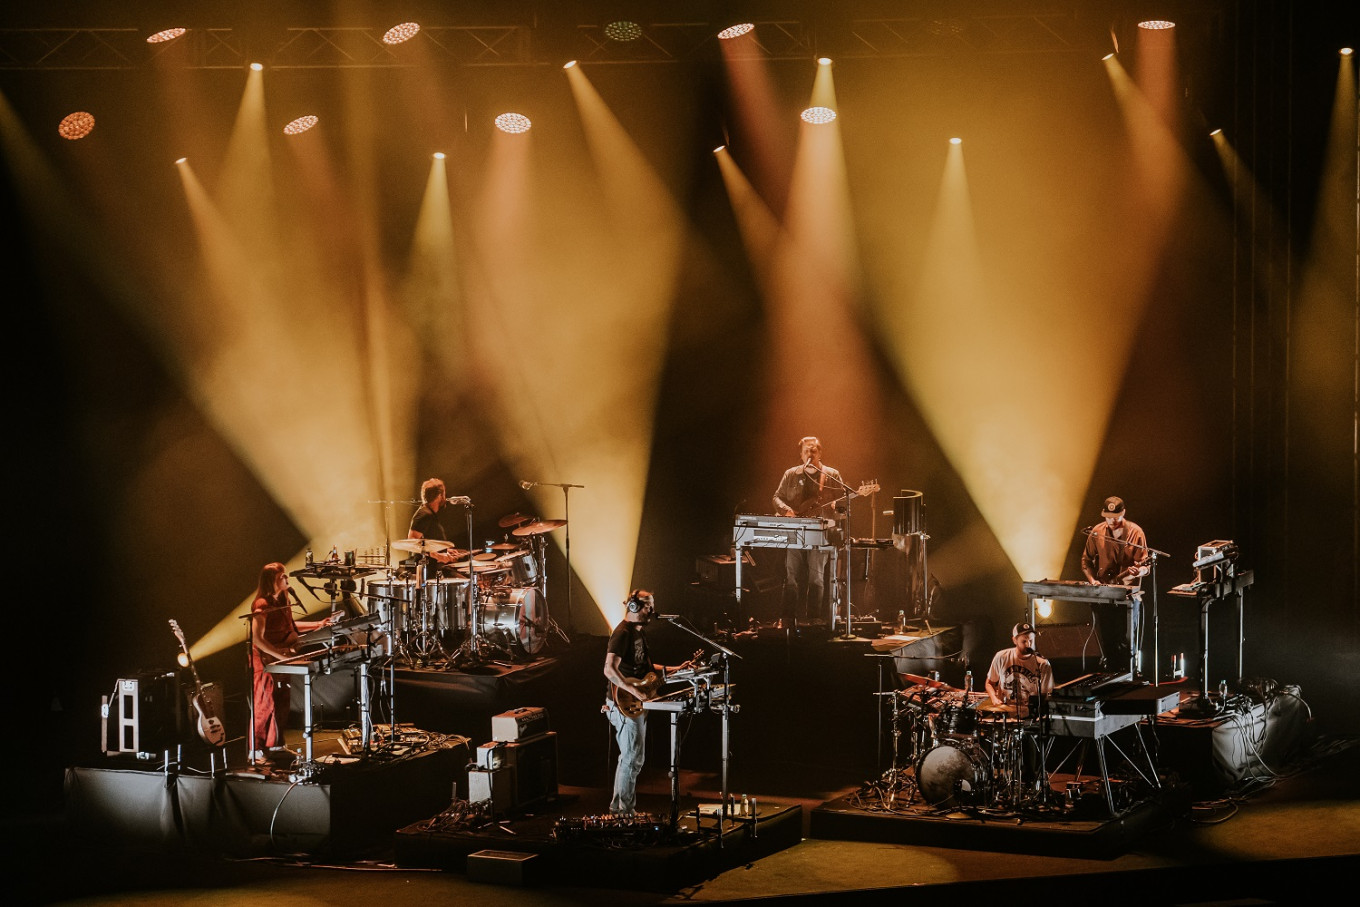 Bon Iver moves Jakarta crowd in captivating performance